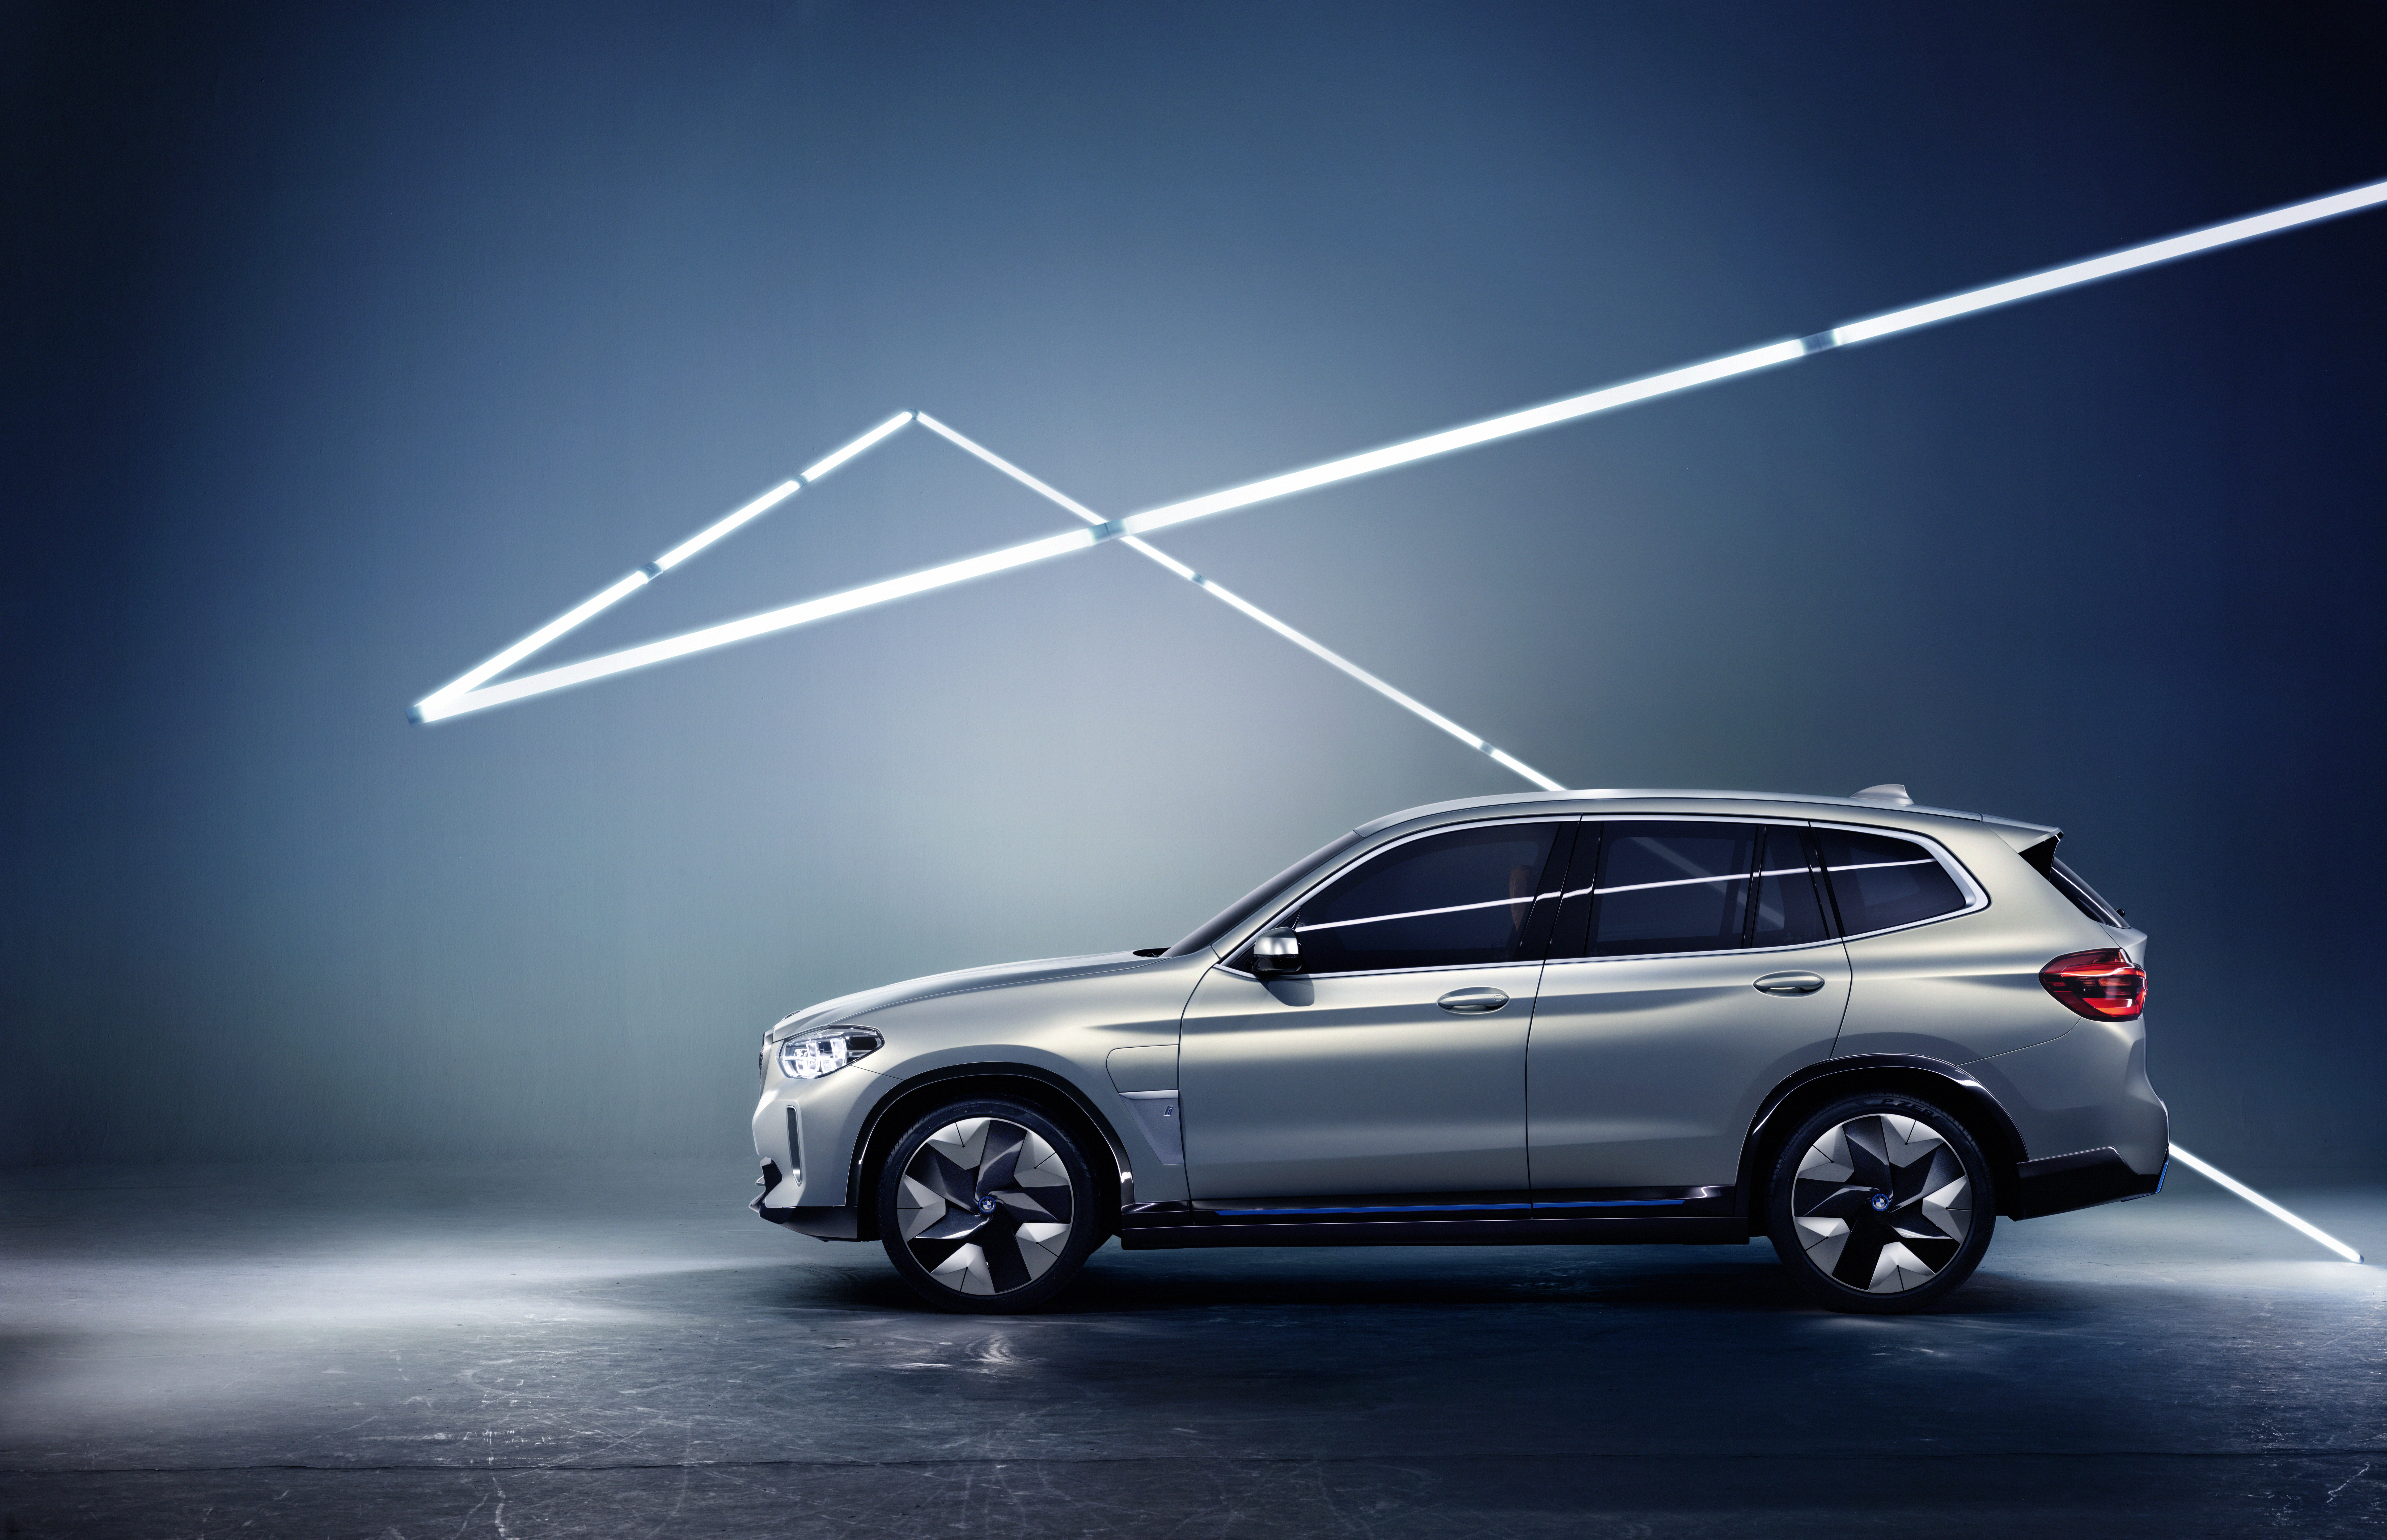 As It Was For Its First Ev The Bmw I3 And Instead Kept Recognizable Design Of X3 With Some Electric Accents I Brand